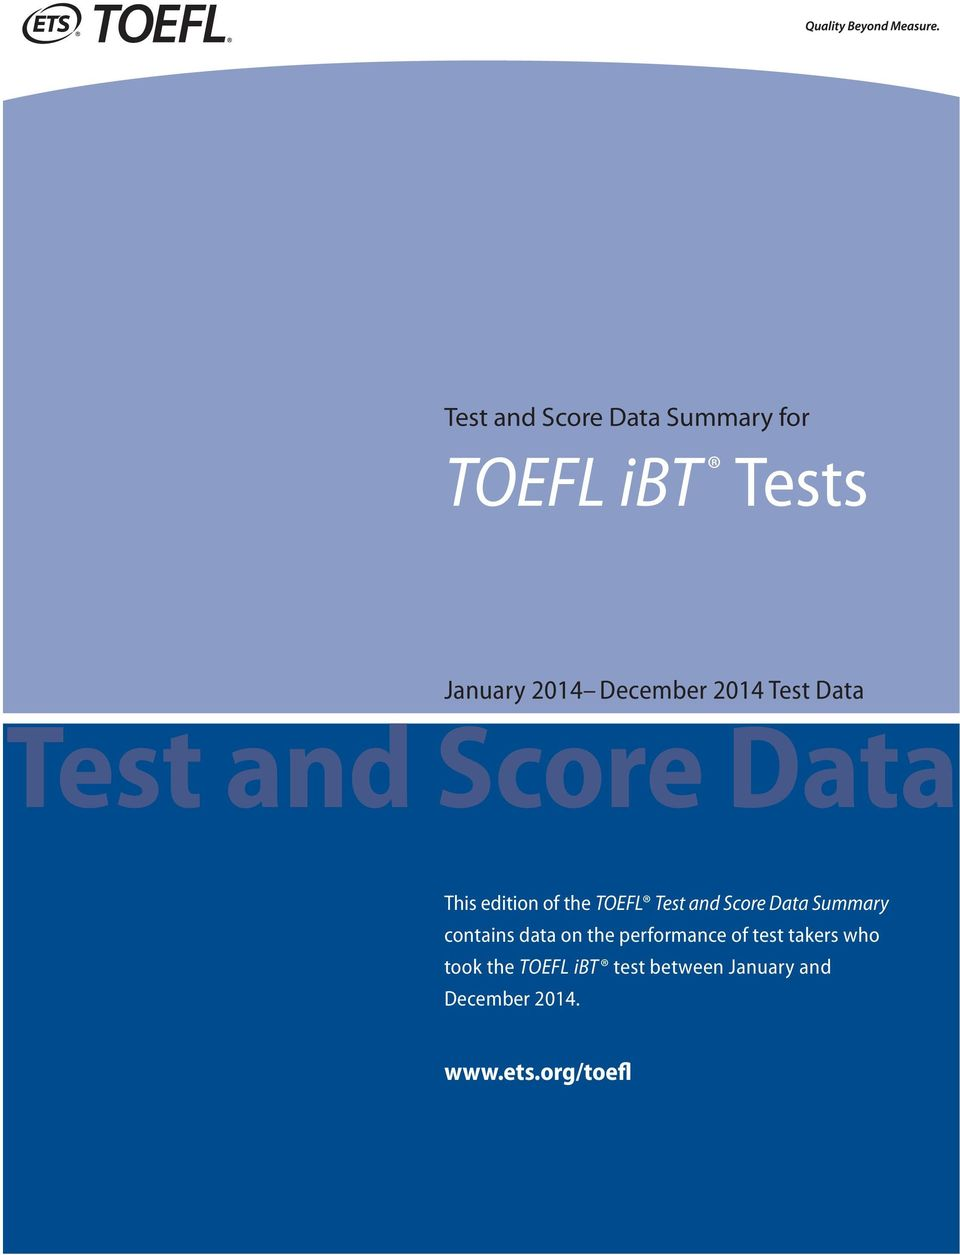 Score Data Summary contains data on the performance of test takers who